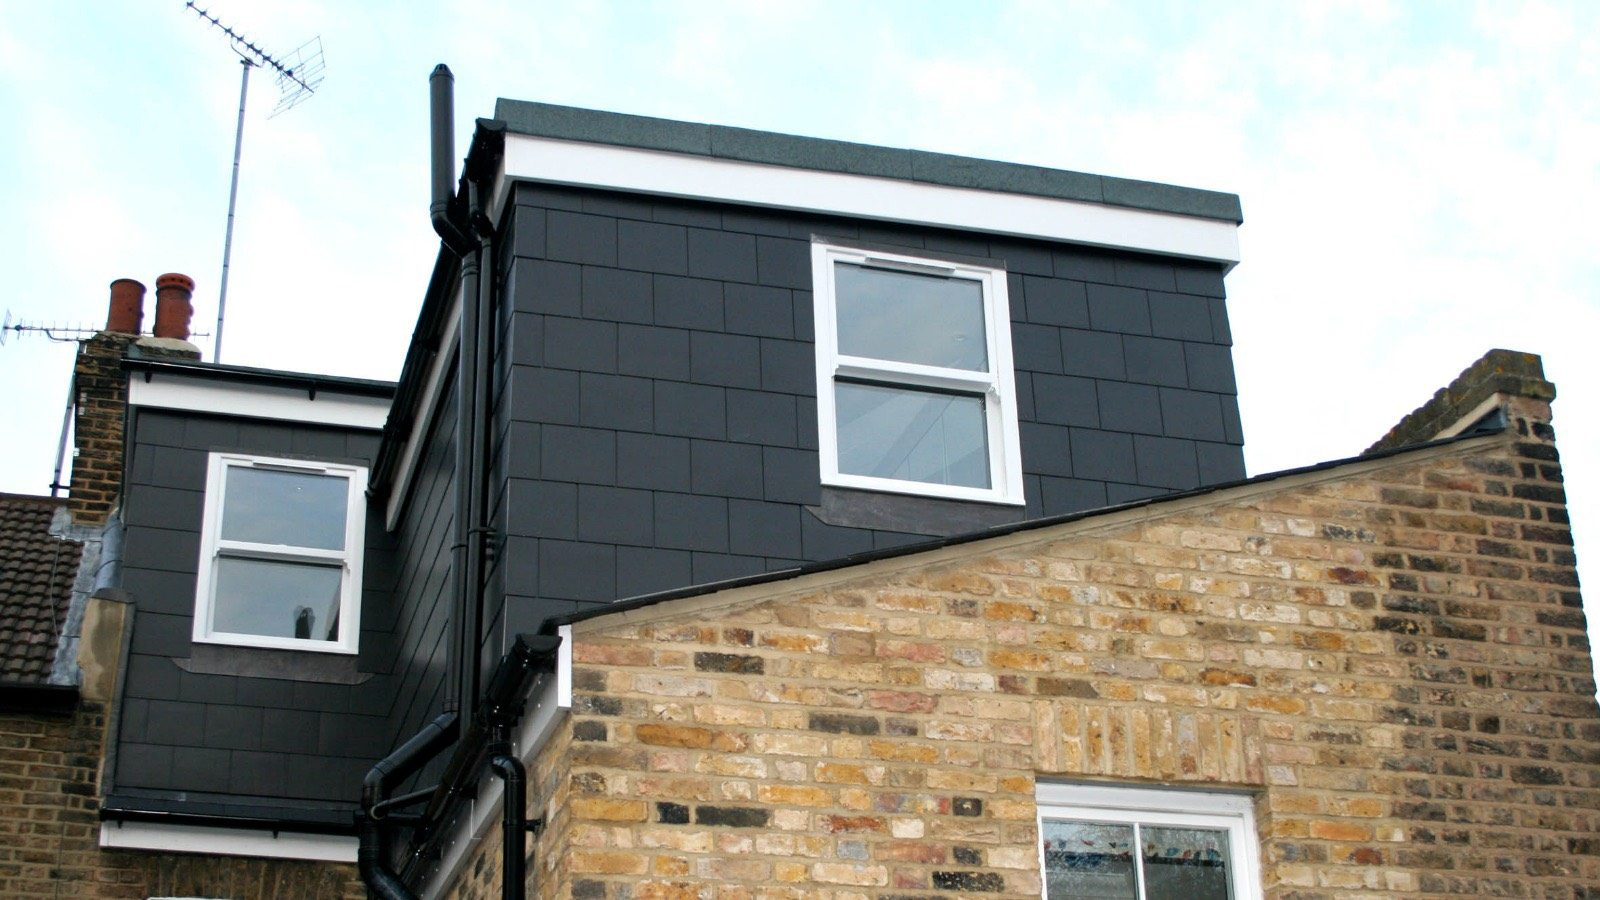 Planning permission for loft conversion - outside loft